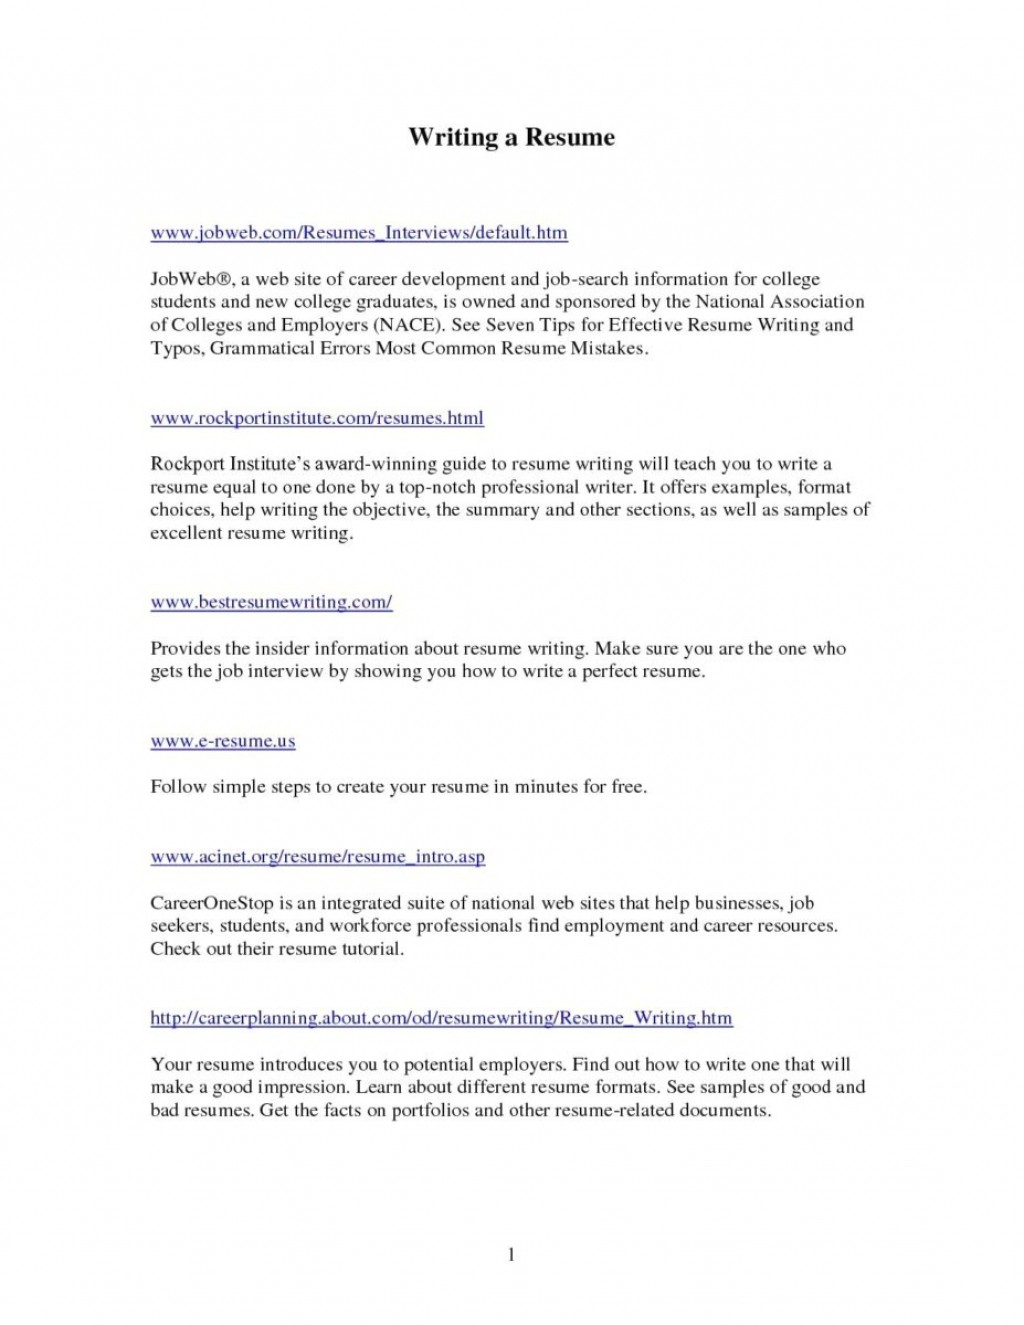 010 How To Write Research Paper Outline Apa Resume Writing Service Reviews Format Best Writers Inspirational Help Professional Of Free Beautiful A Style Large